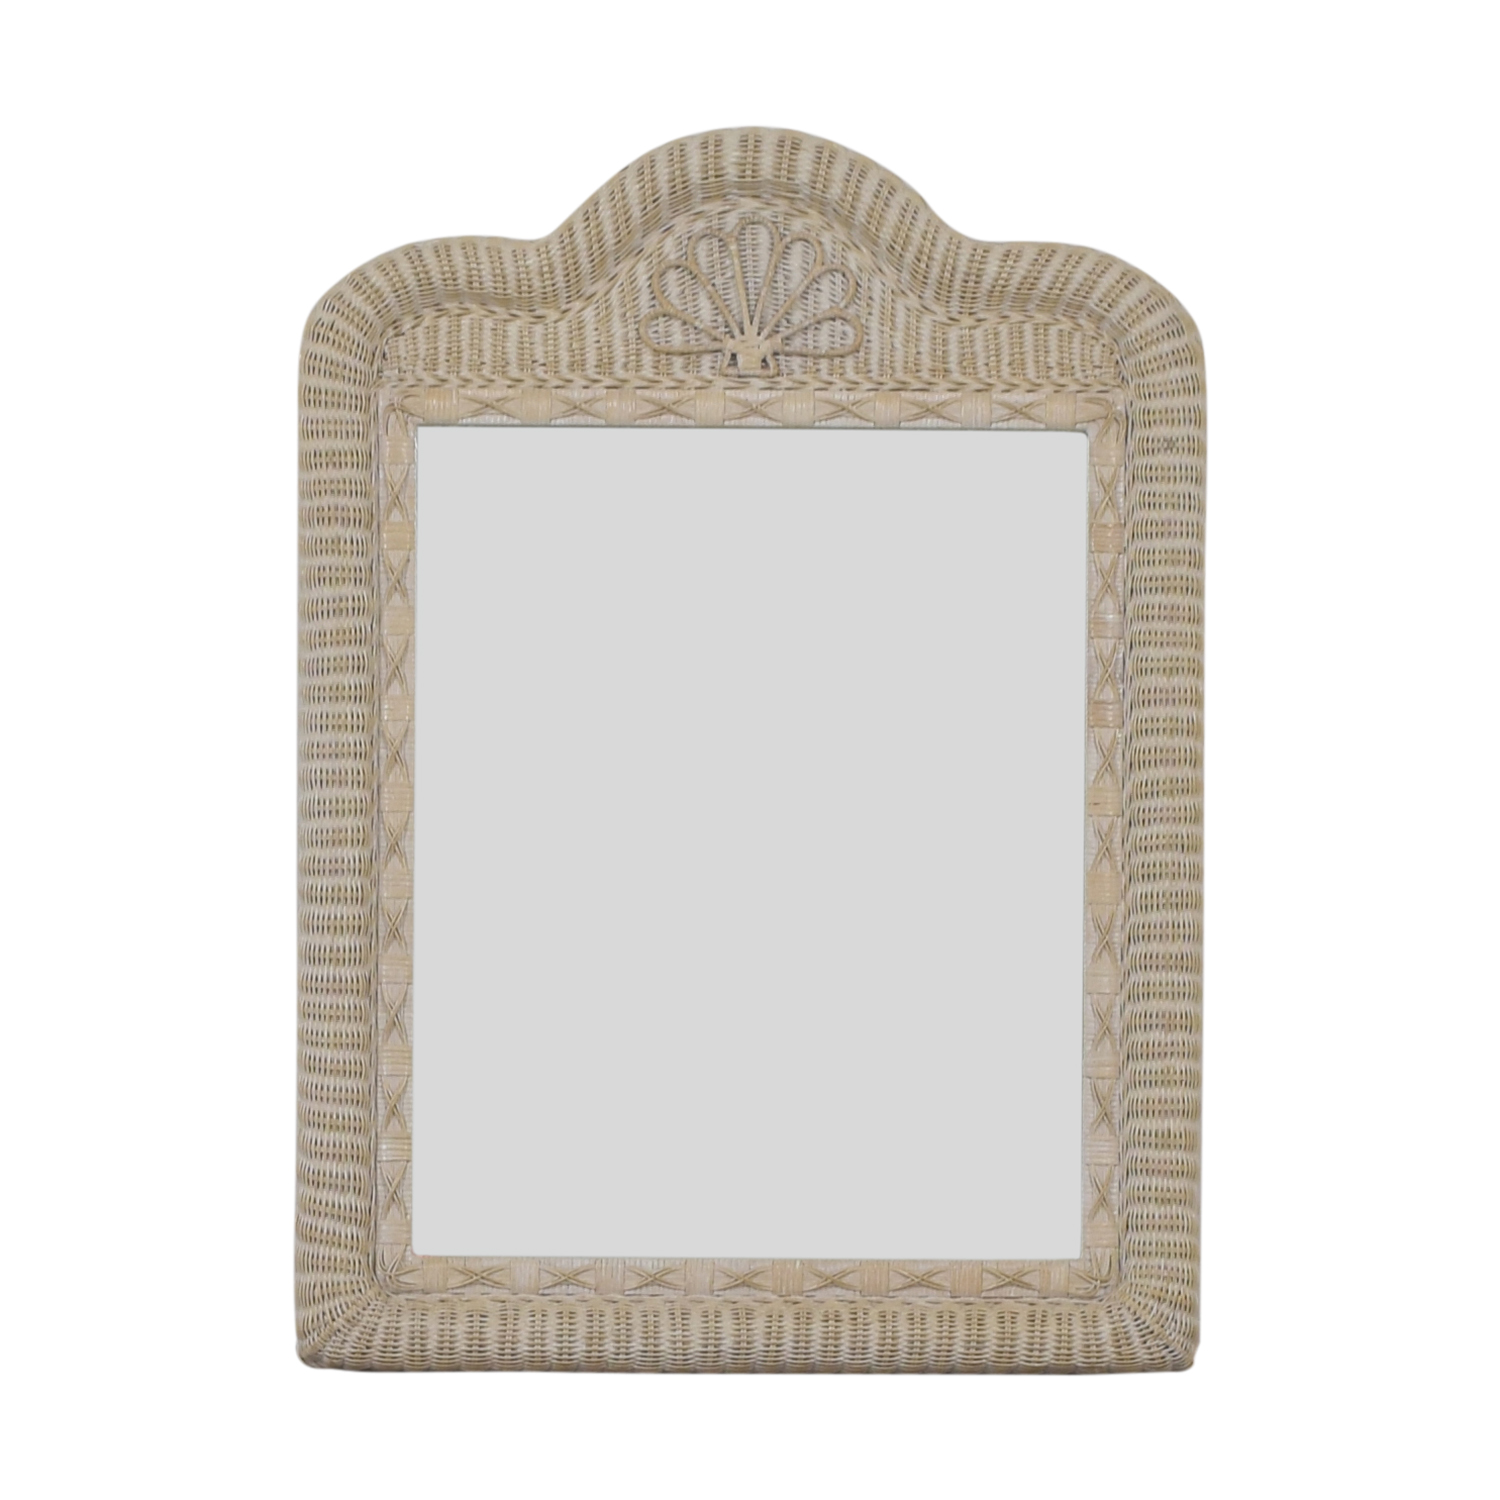 WIcker Mirror price